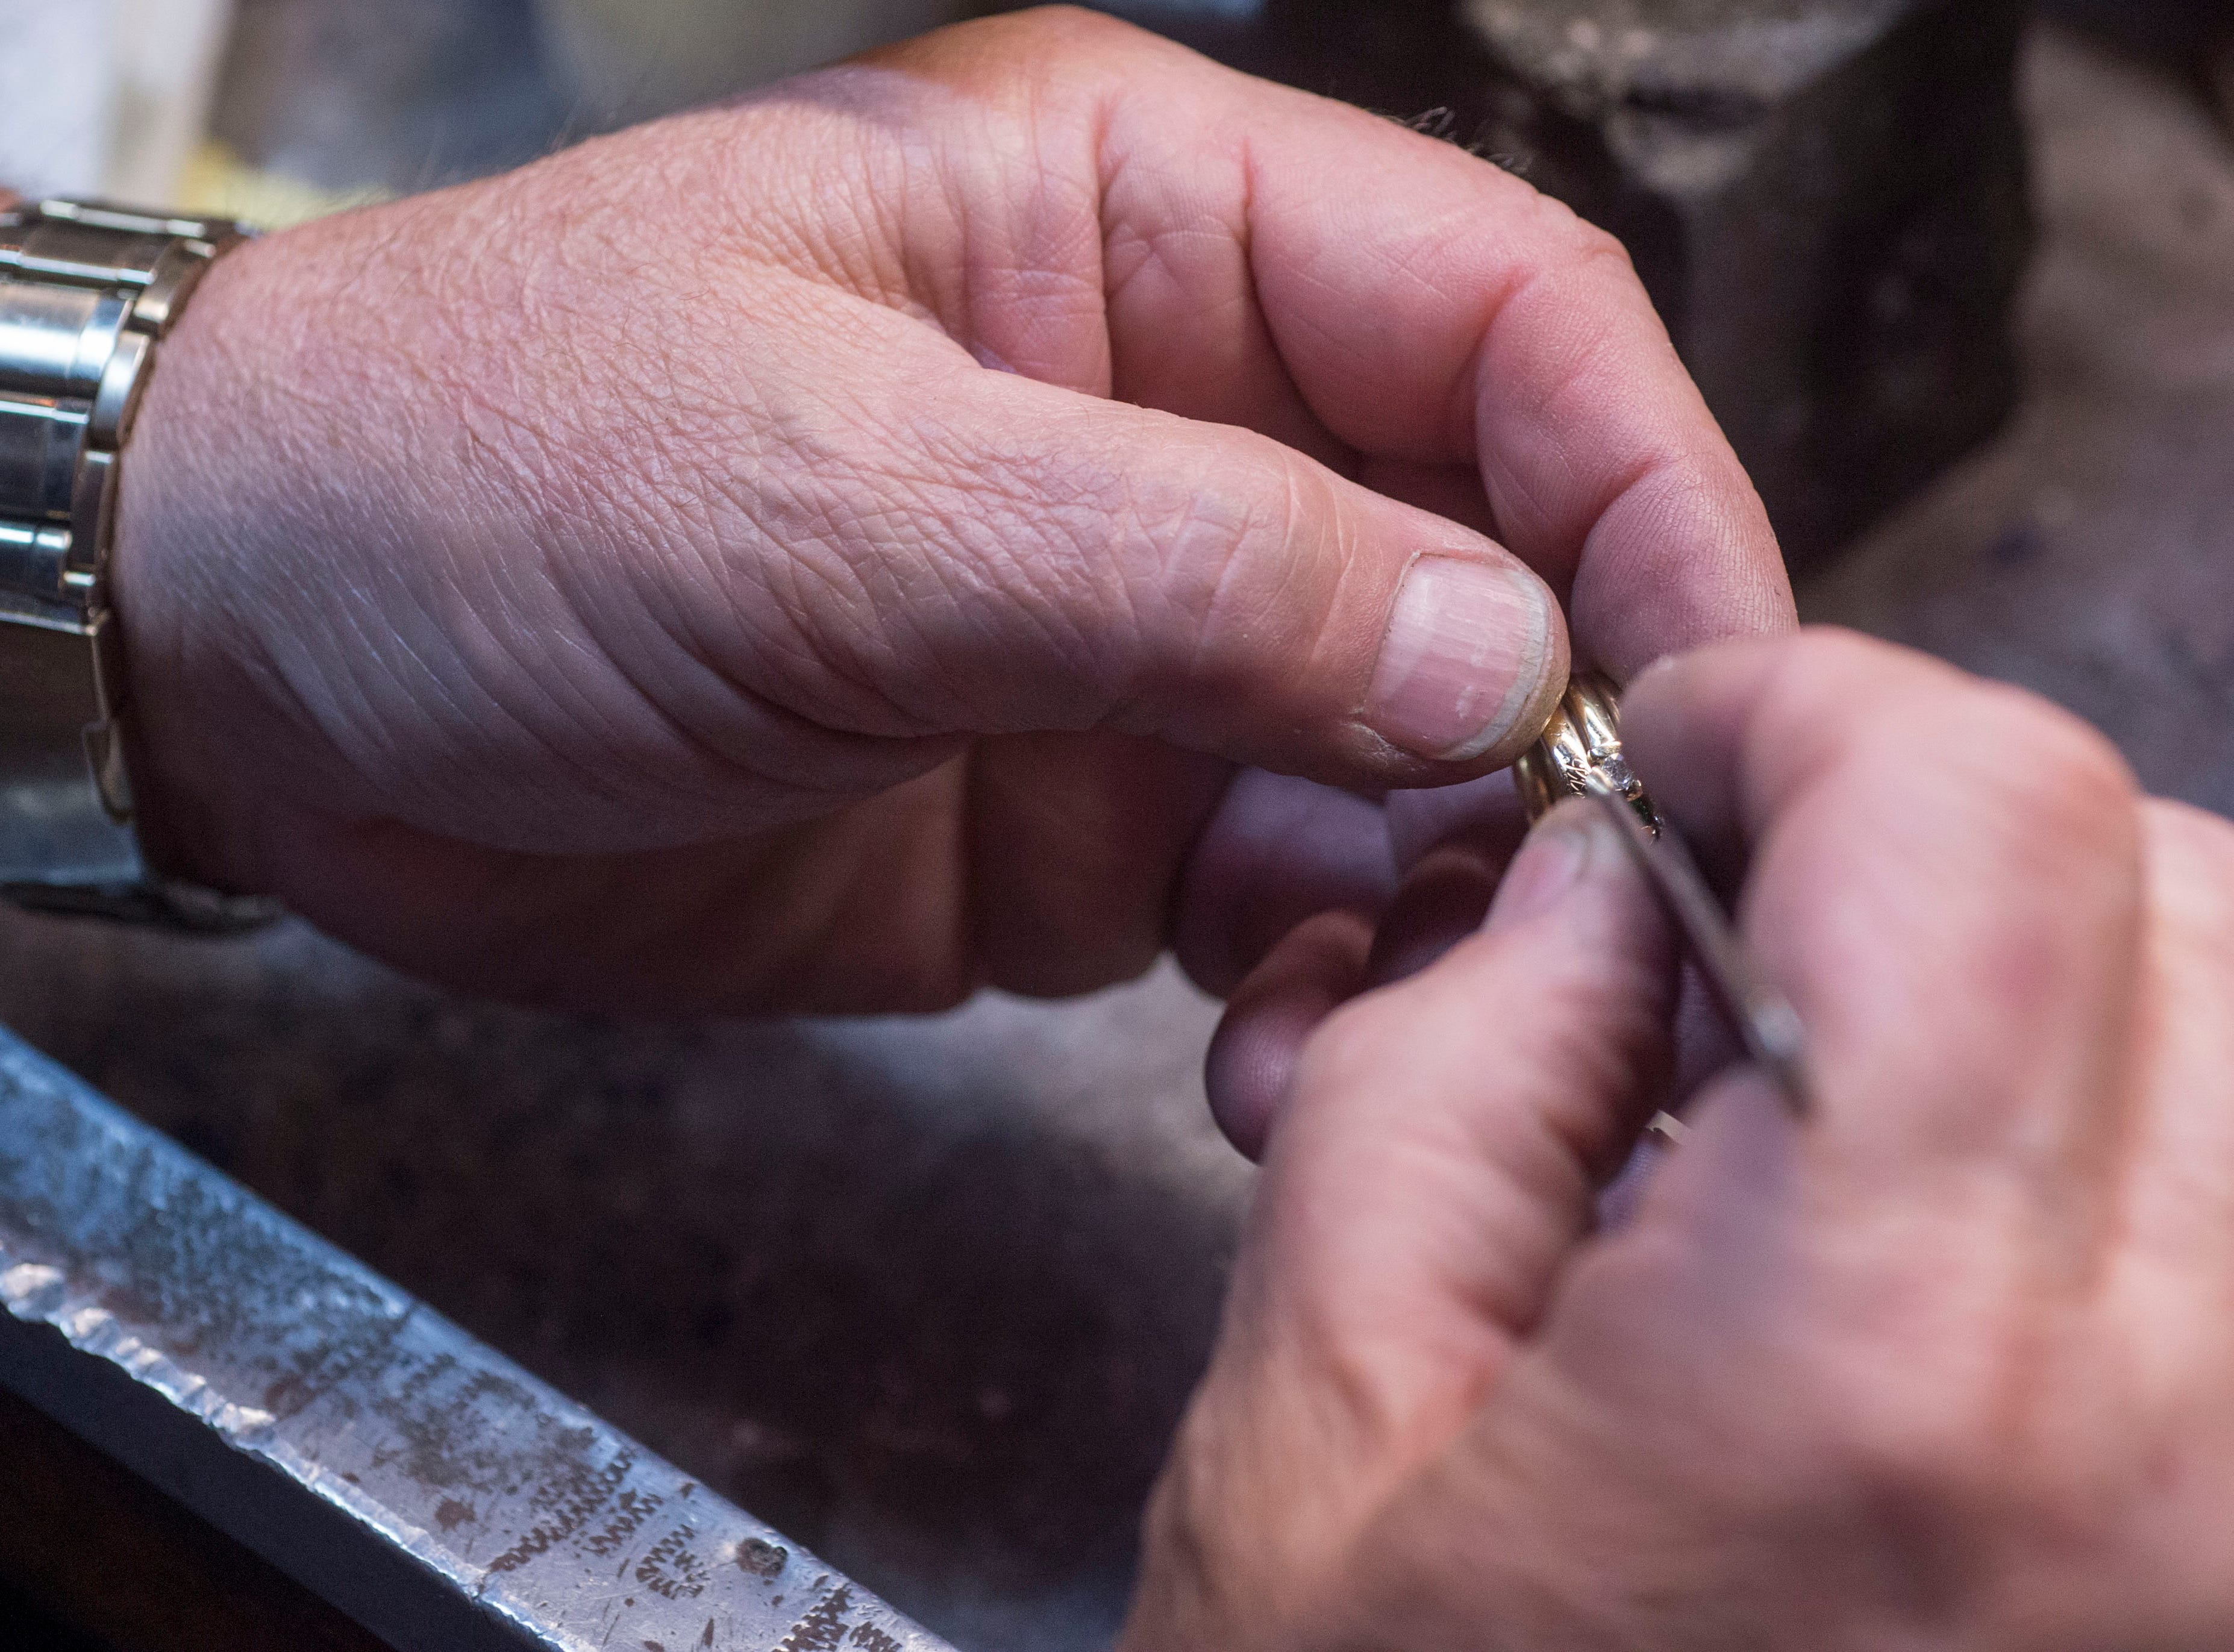 Bryan Turley, owner of Turley Mfg. Jewelers, works on a ring Thursday, April 11, 2019. Turley Mfg. Jewelers is a third generation family own jewelry store in its 71st year in Downtown Evansville, Indiana.